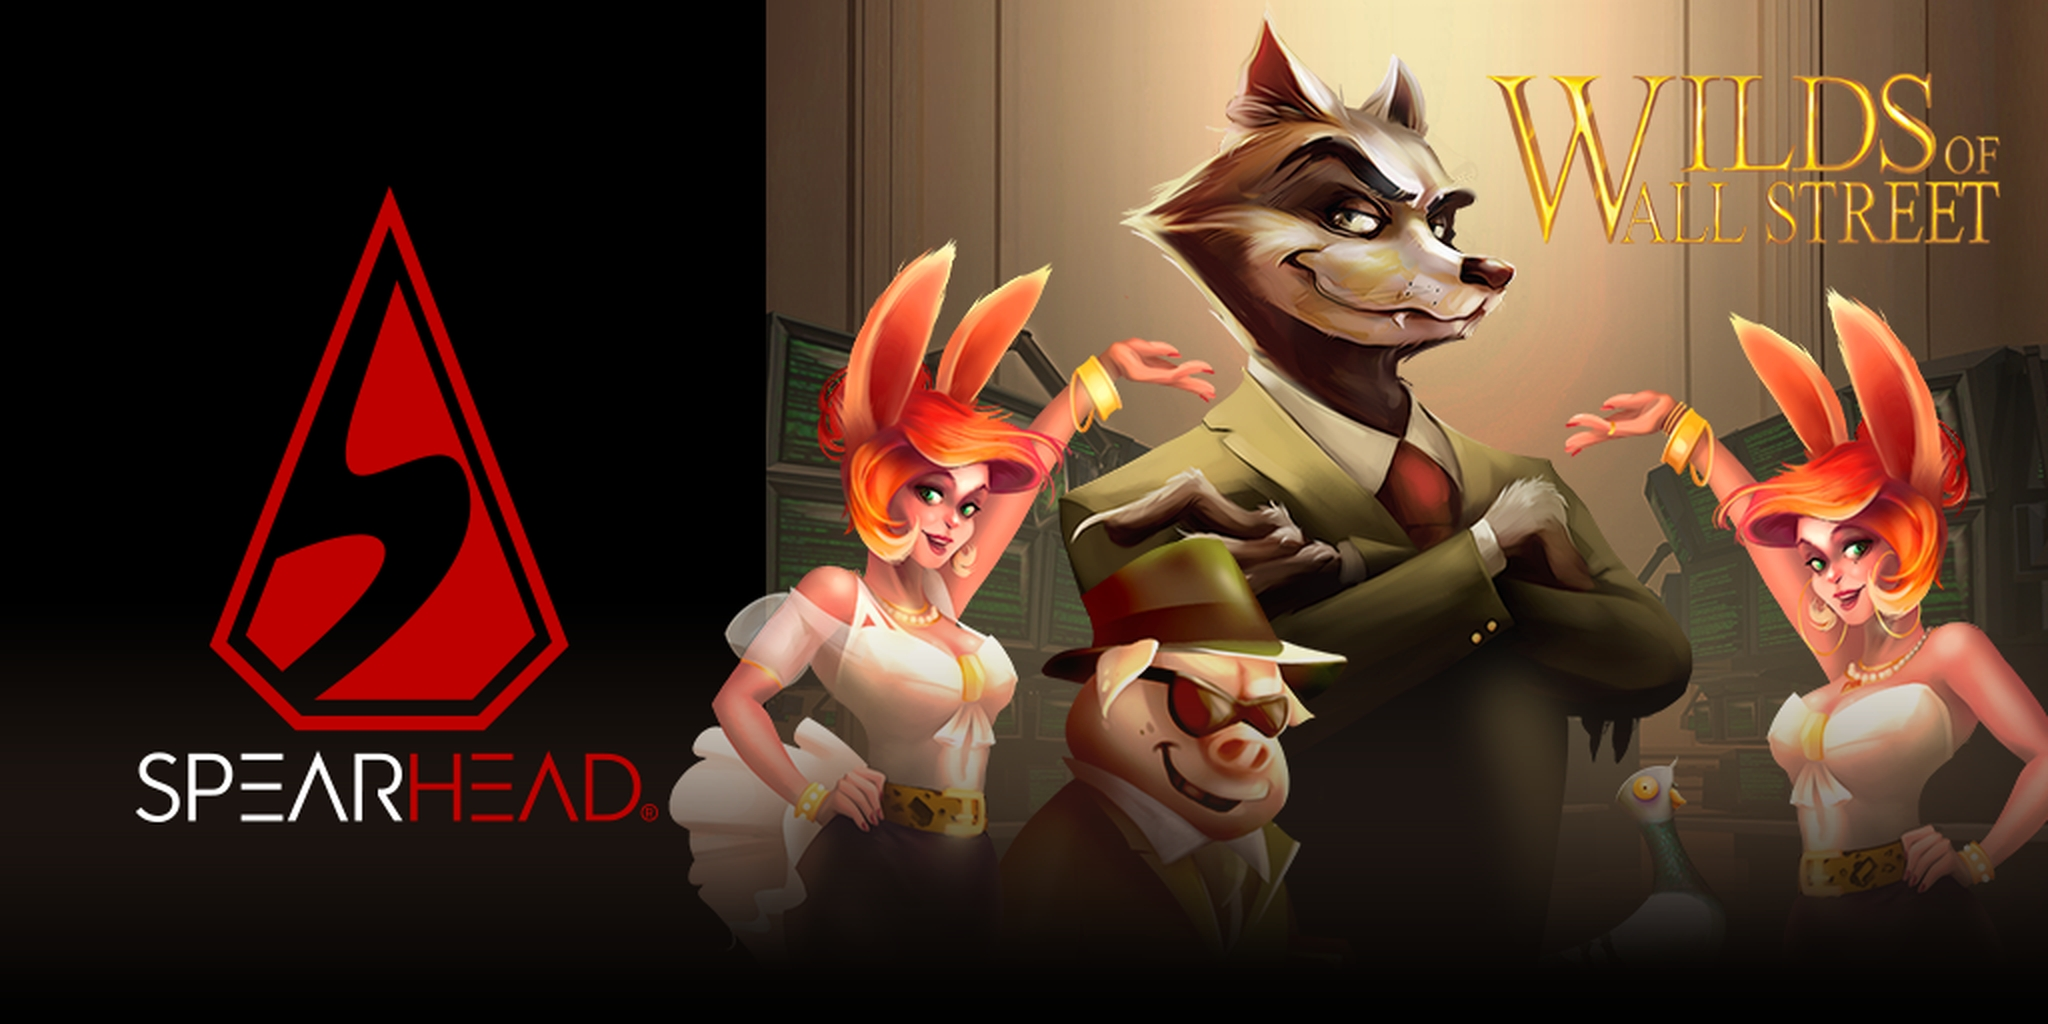 Se Wilds of Wall Street Online Slot Demo Game, Spearhead Studios